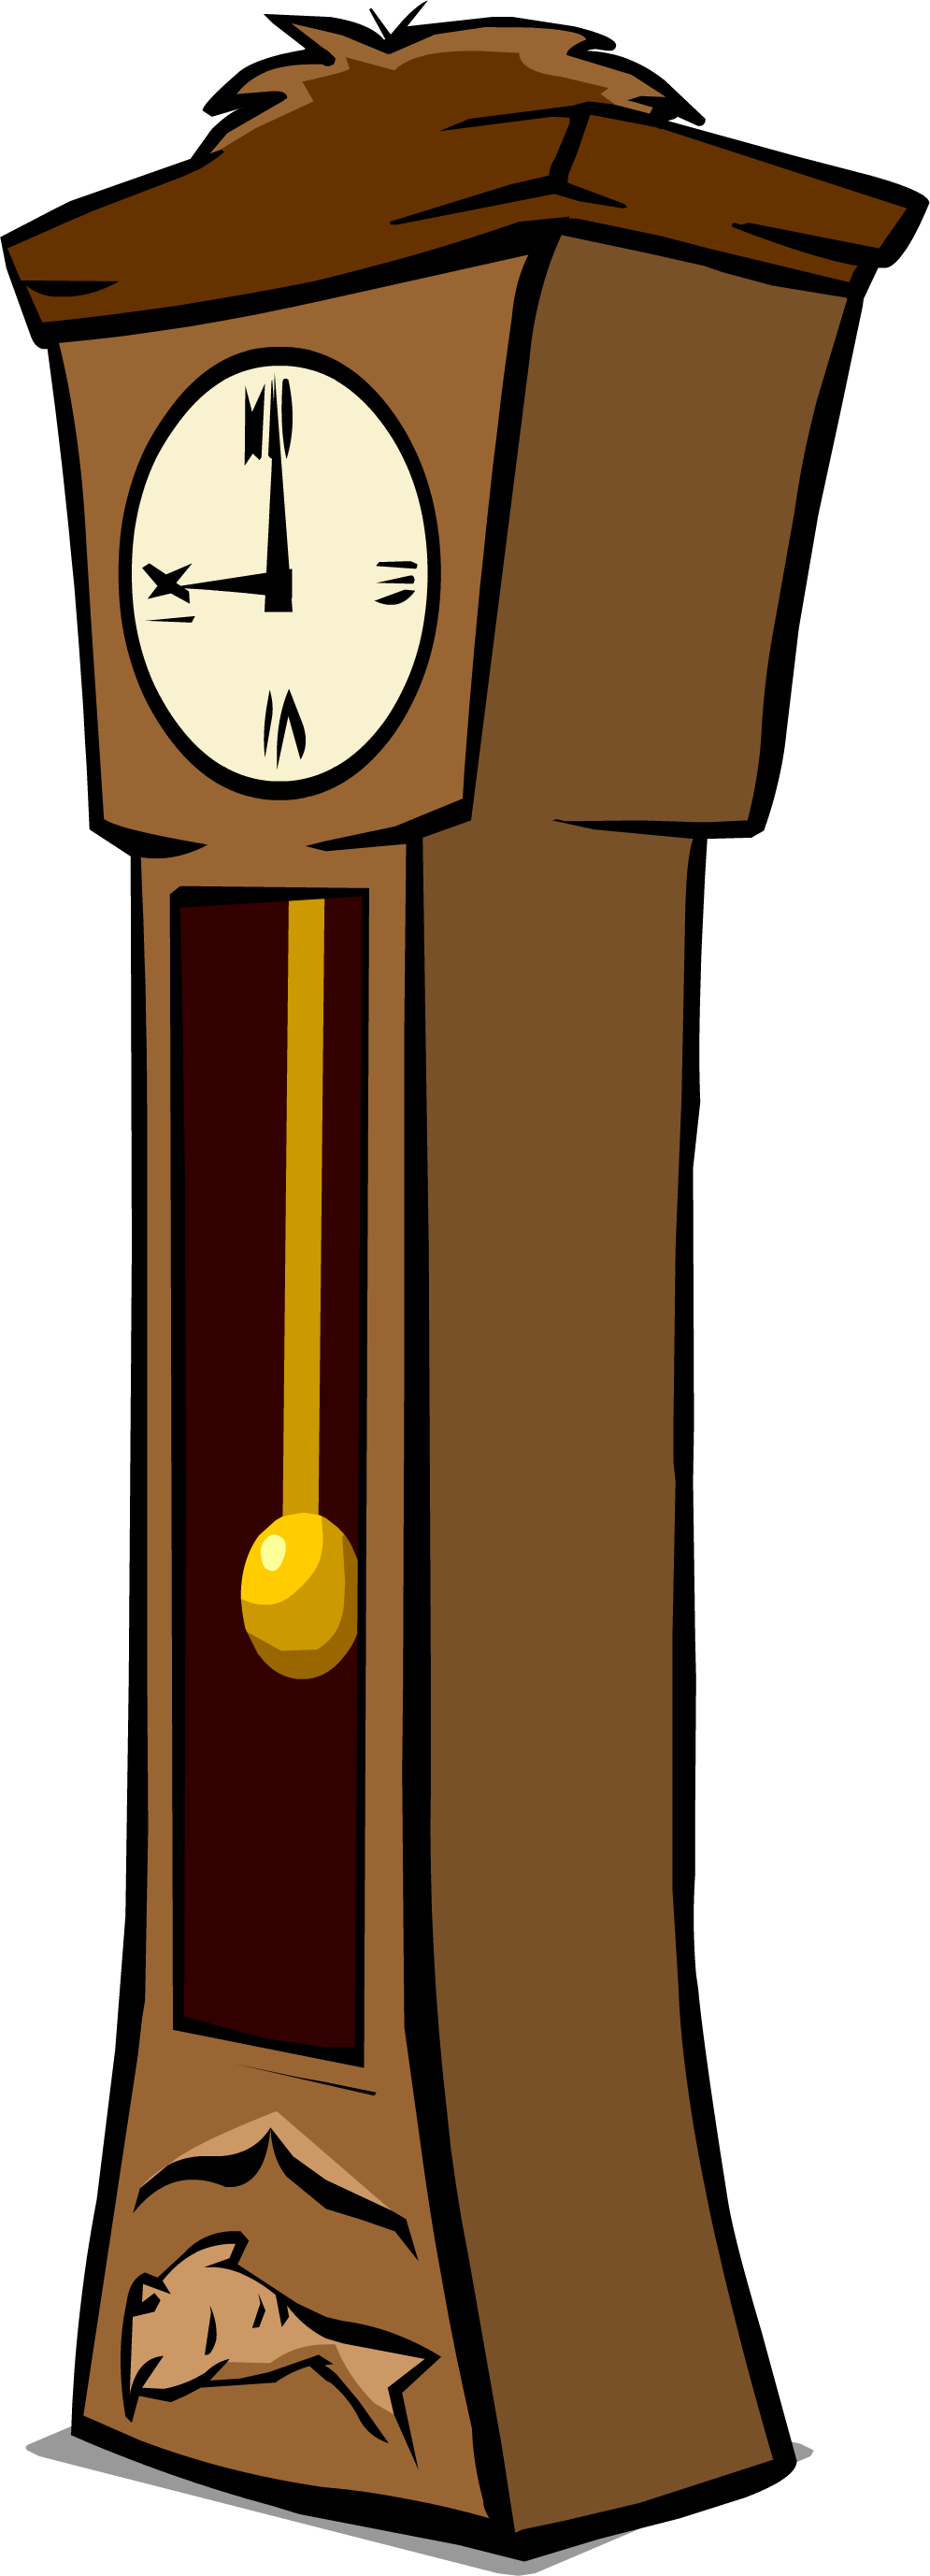 image grandfather clock sprite 002 png club penguin wiki rh clubpenguin wikia com Old Clock Clip Art grandfather clock clip art free